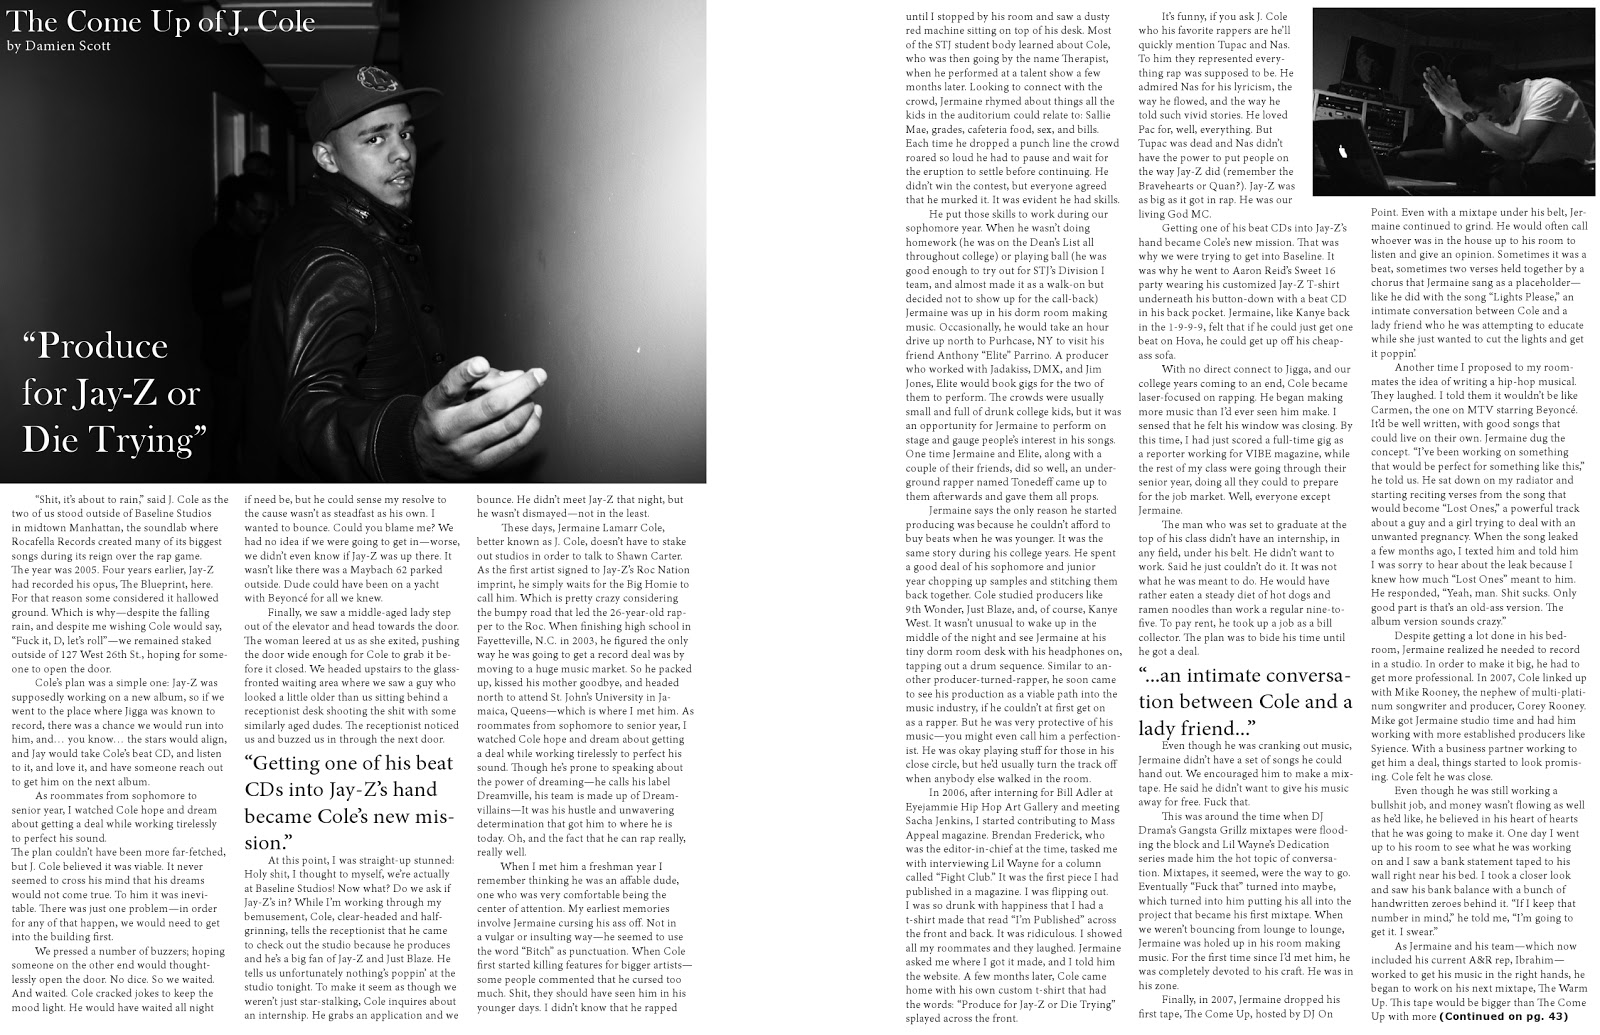 DStyles' Blog: Magazine 2 Page Spread